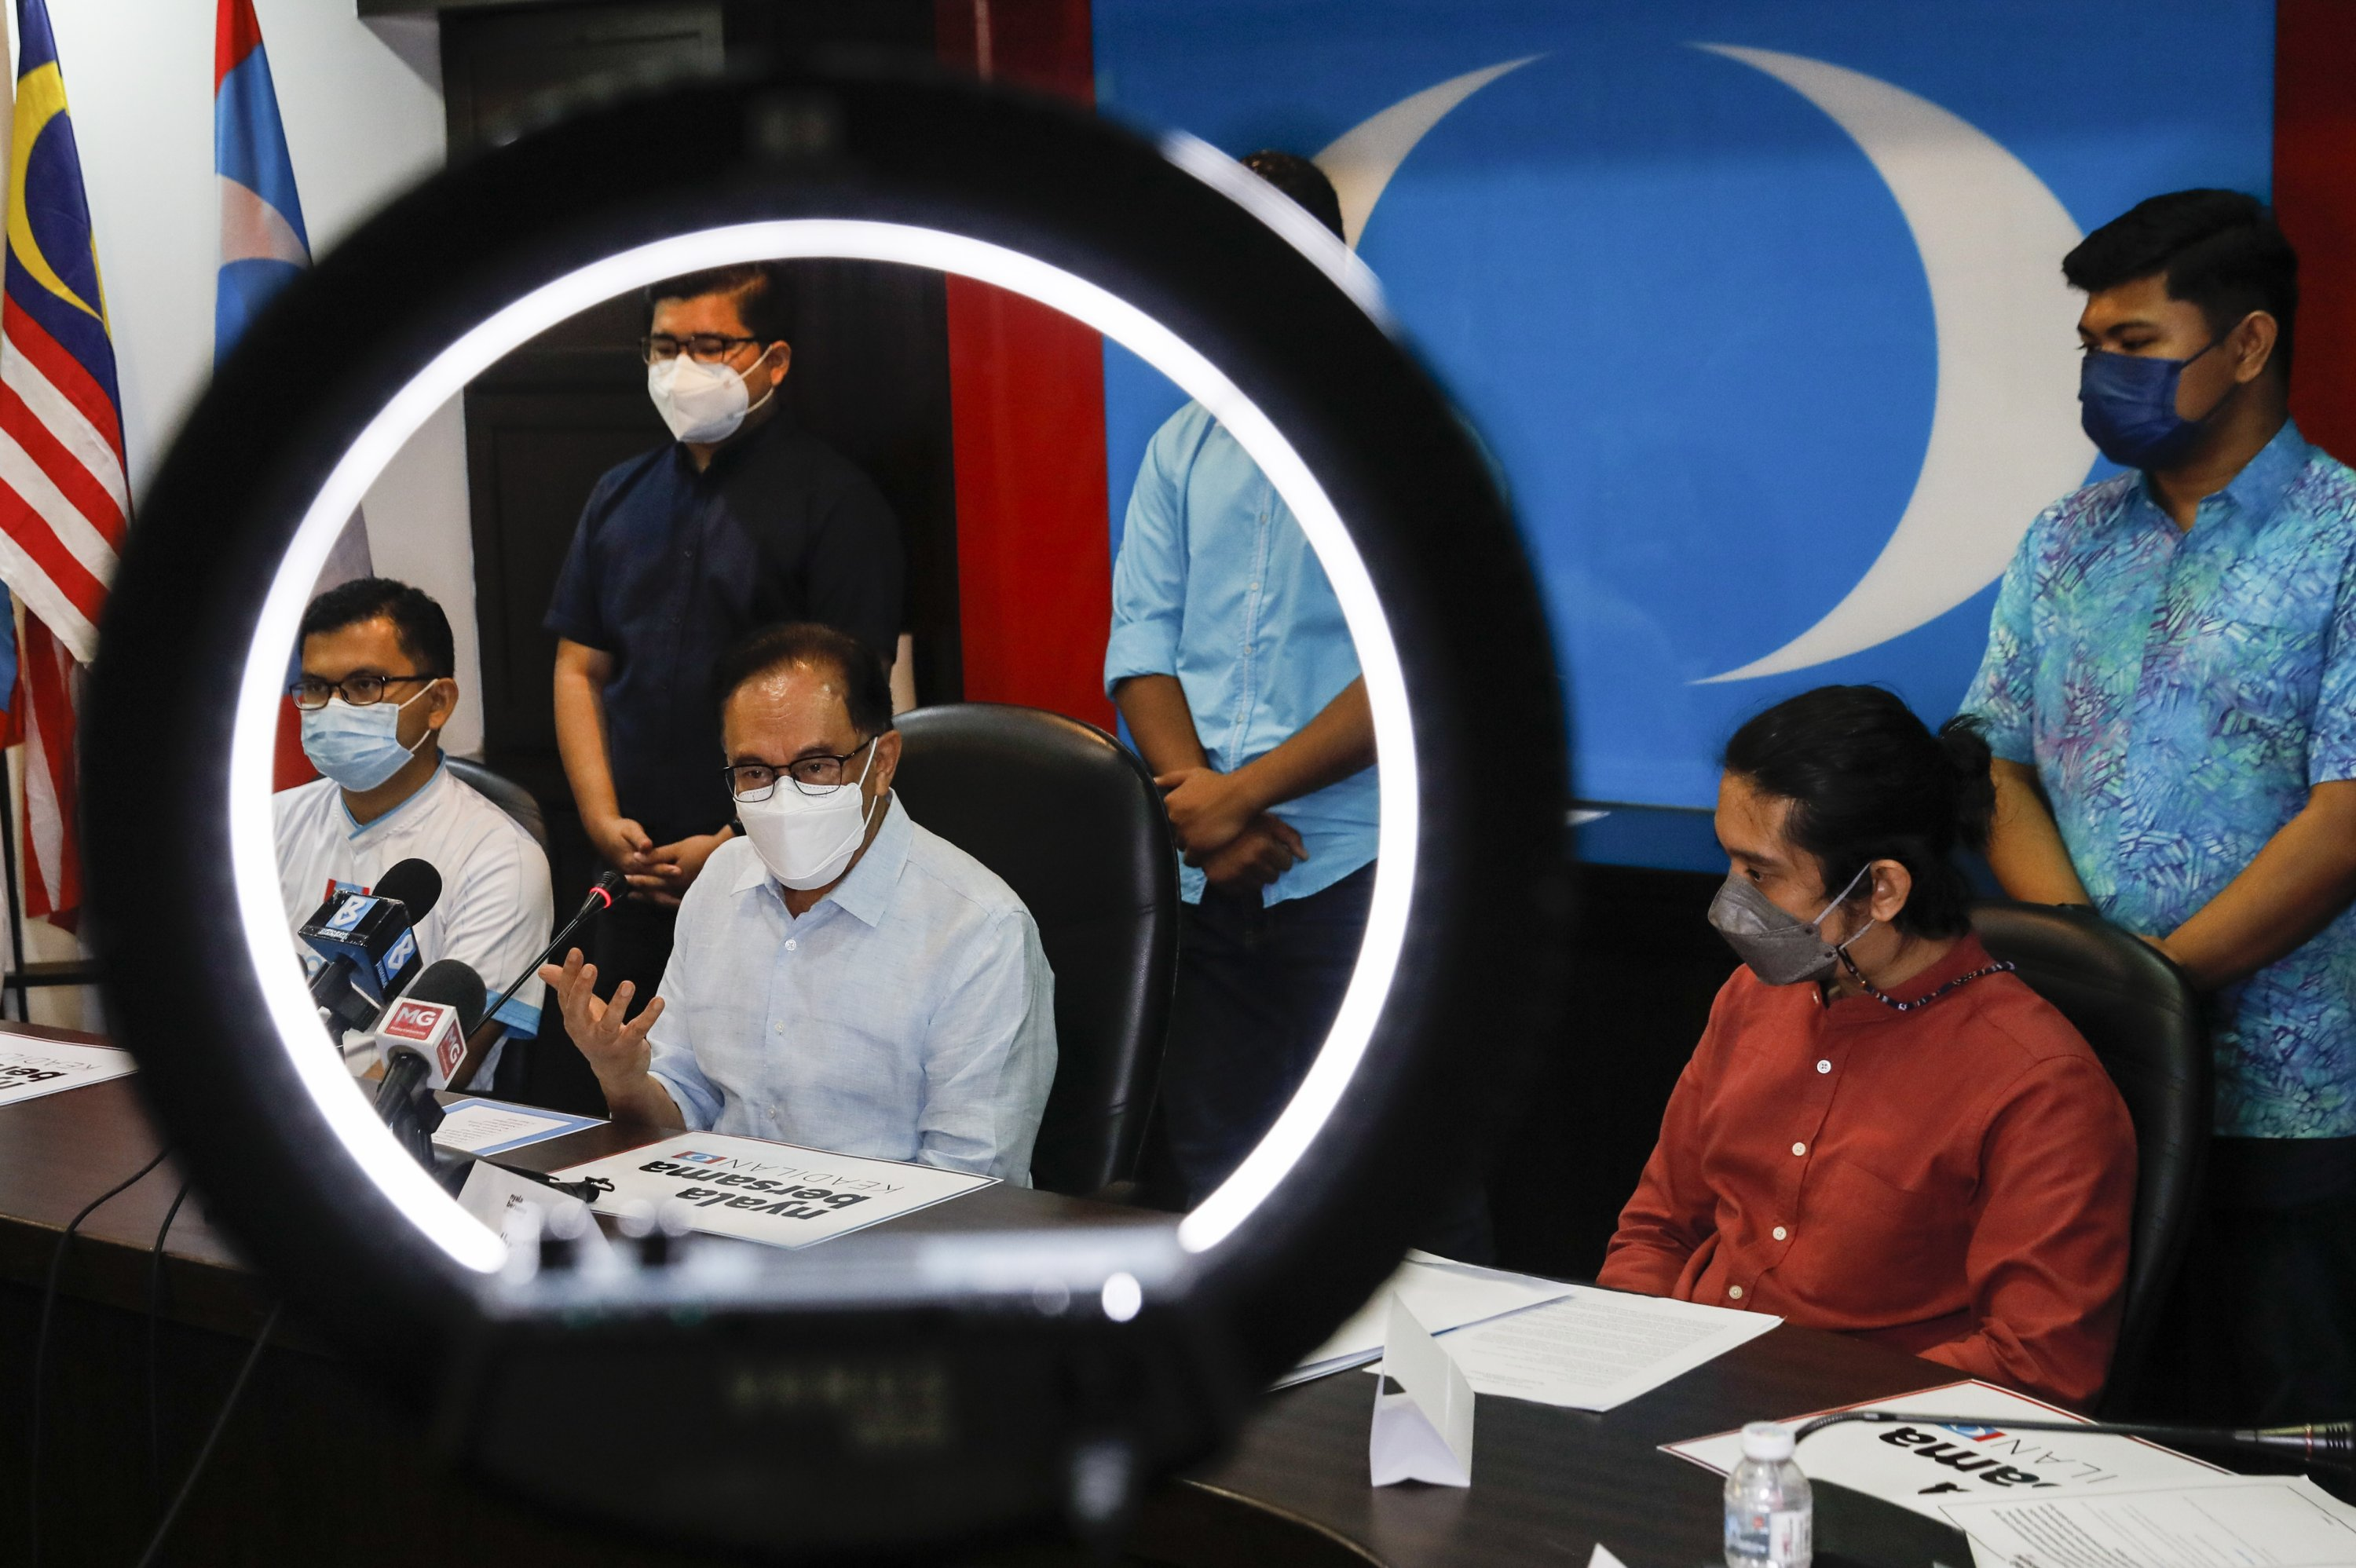 Malaysia Opposition Leader Anwar Ibrahim (C) reacts during a press conference at the People's Justice Party headquarters in Petaling Jaya, outside Kuala Lumpur, Malaysia, Sept. 16, 2021. (EPA Photo)